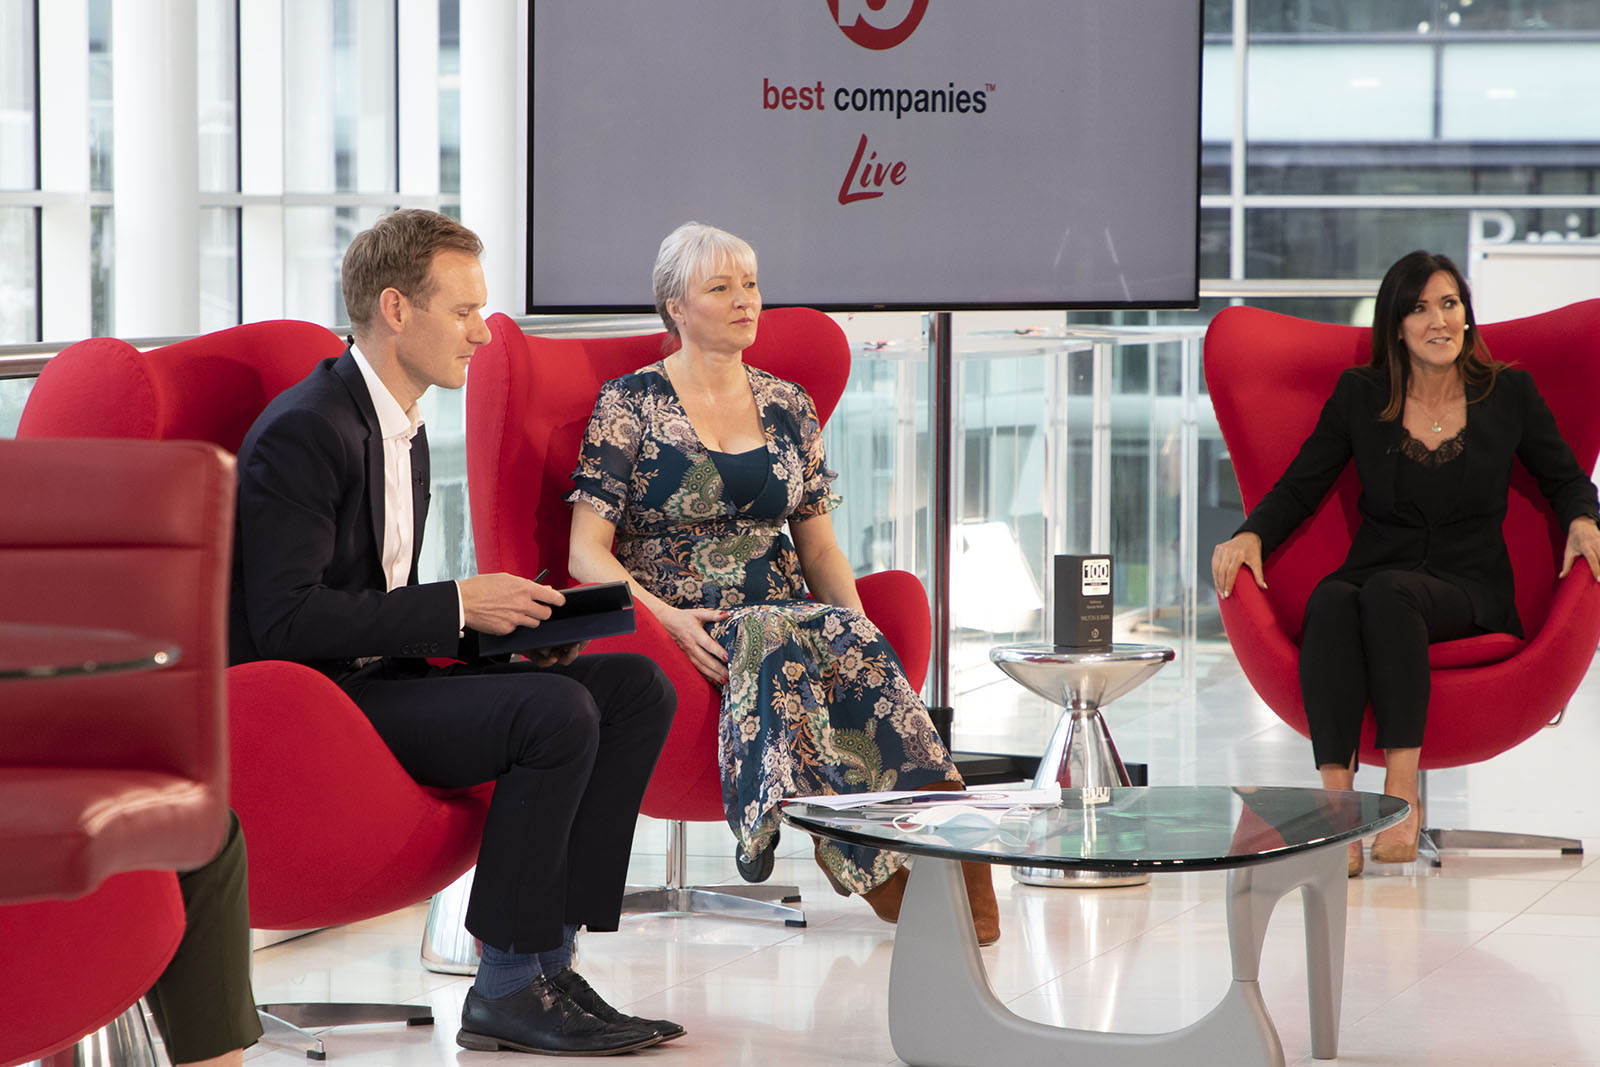 TV Presenter Dan Walker with Community Trust CEO Emma Ratzer MBE and People and brand Director of Wilton and Bain Claire Elliott on the set of Best Companies Live